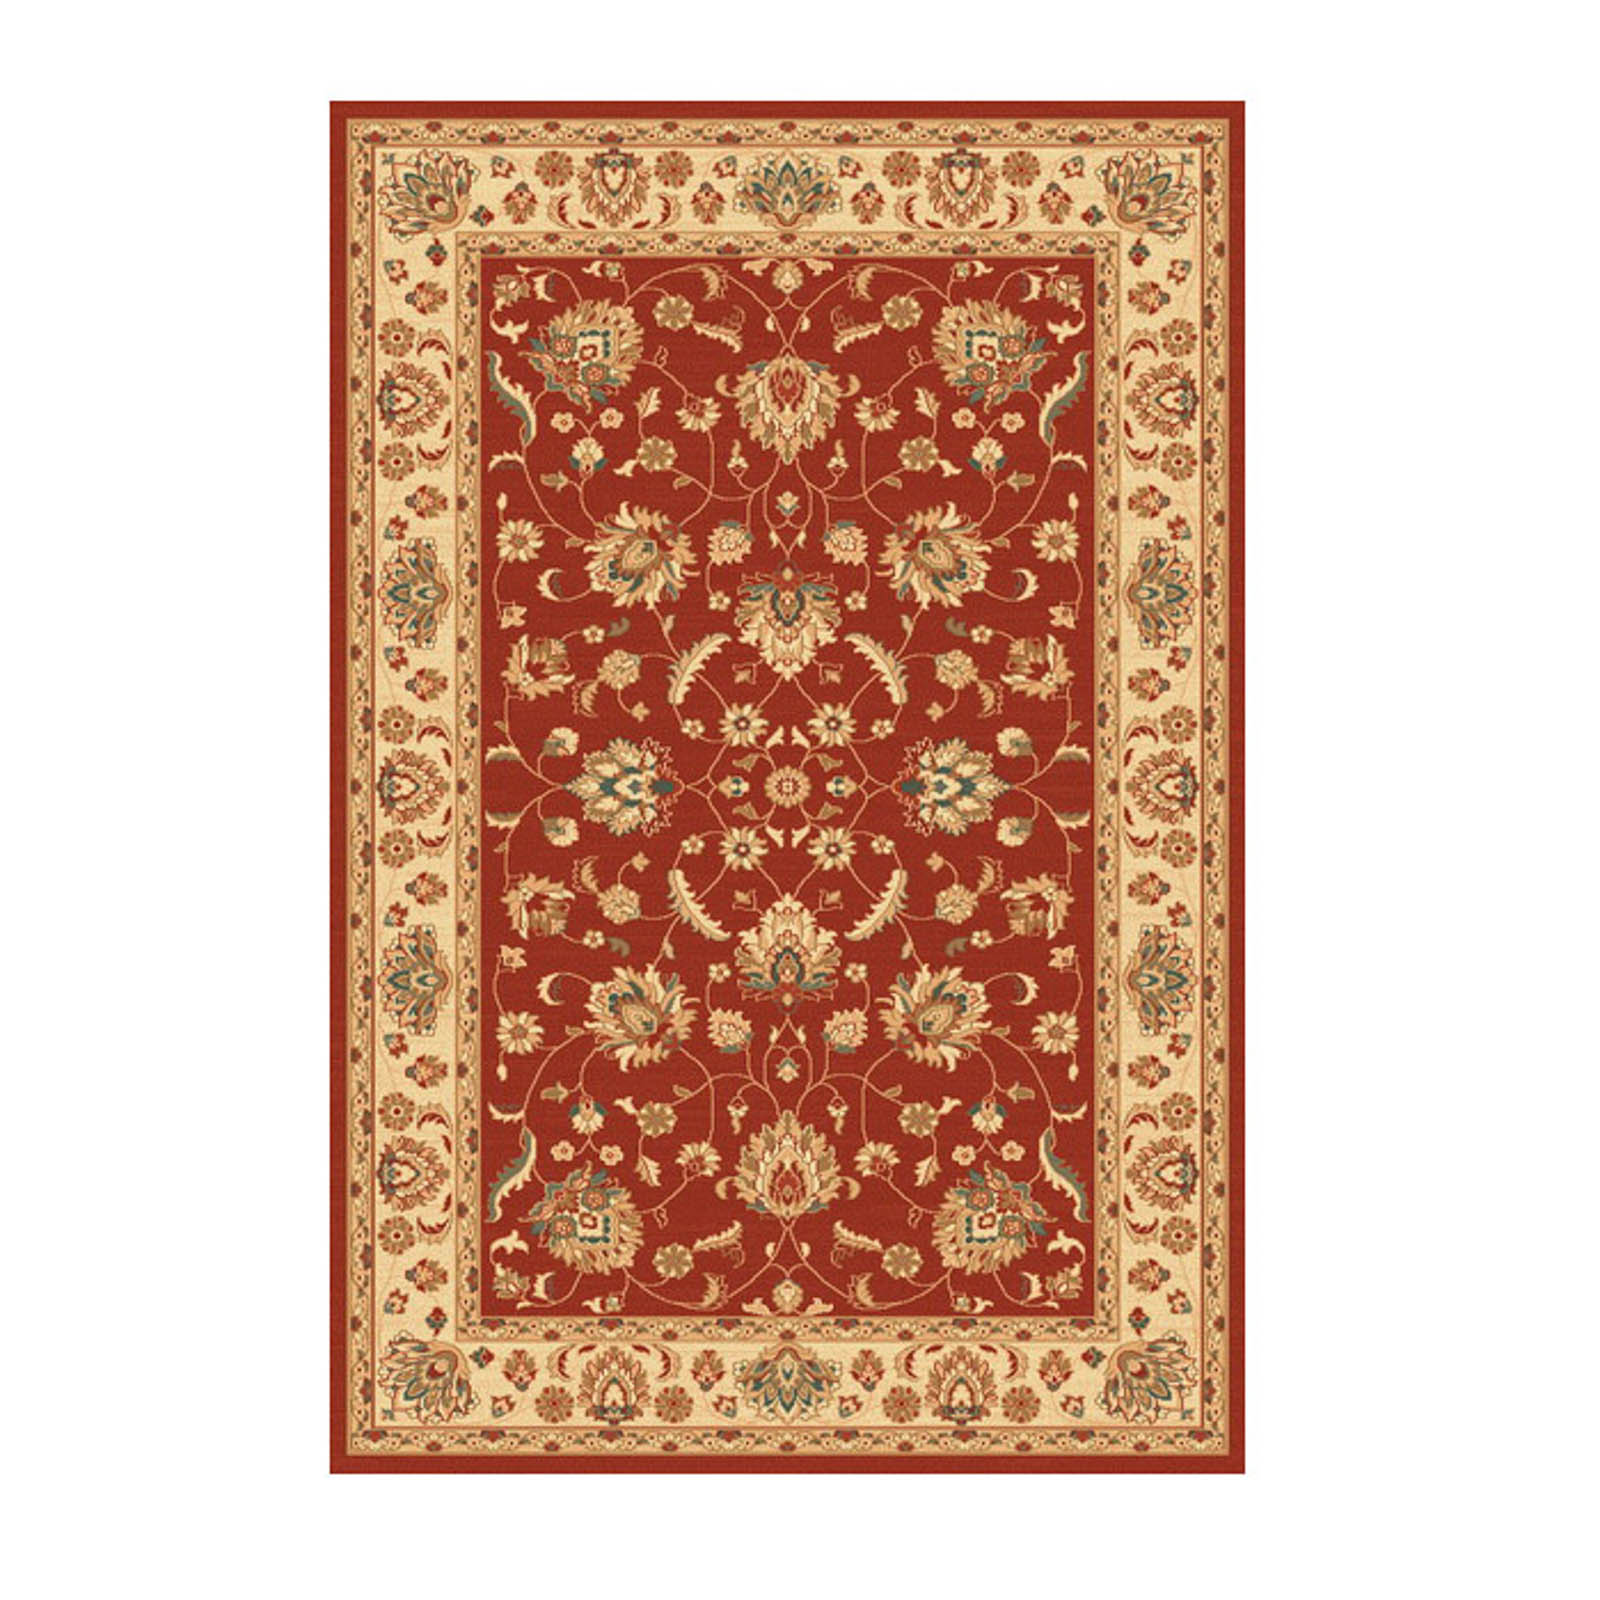 Woburn Ziegler Rugs in Red Ivory